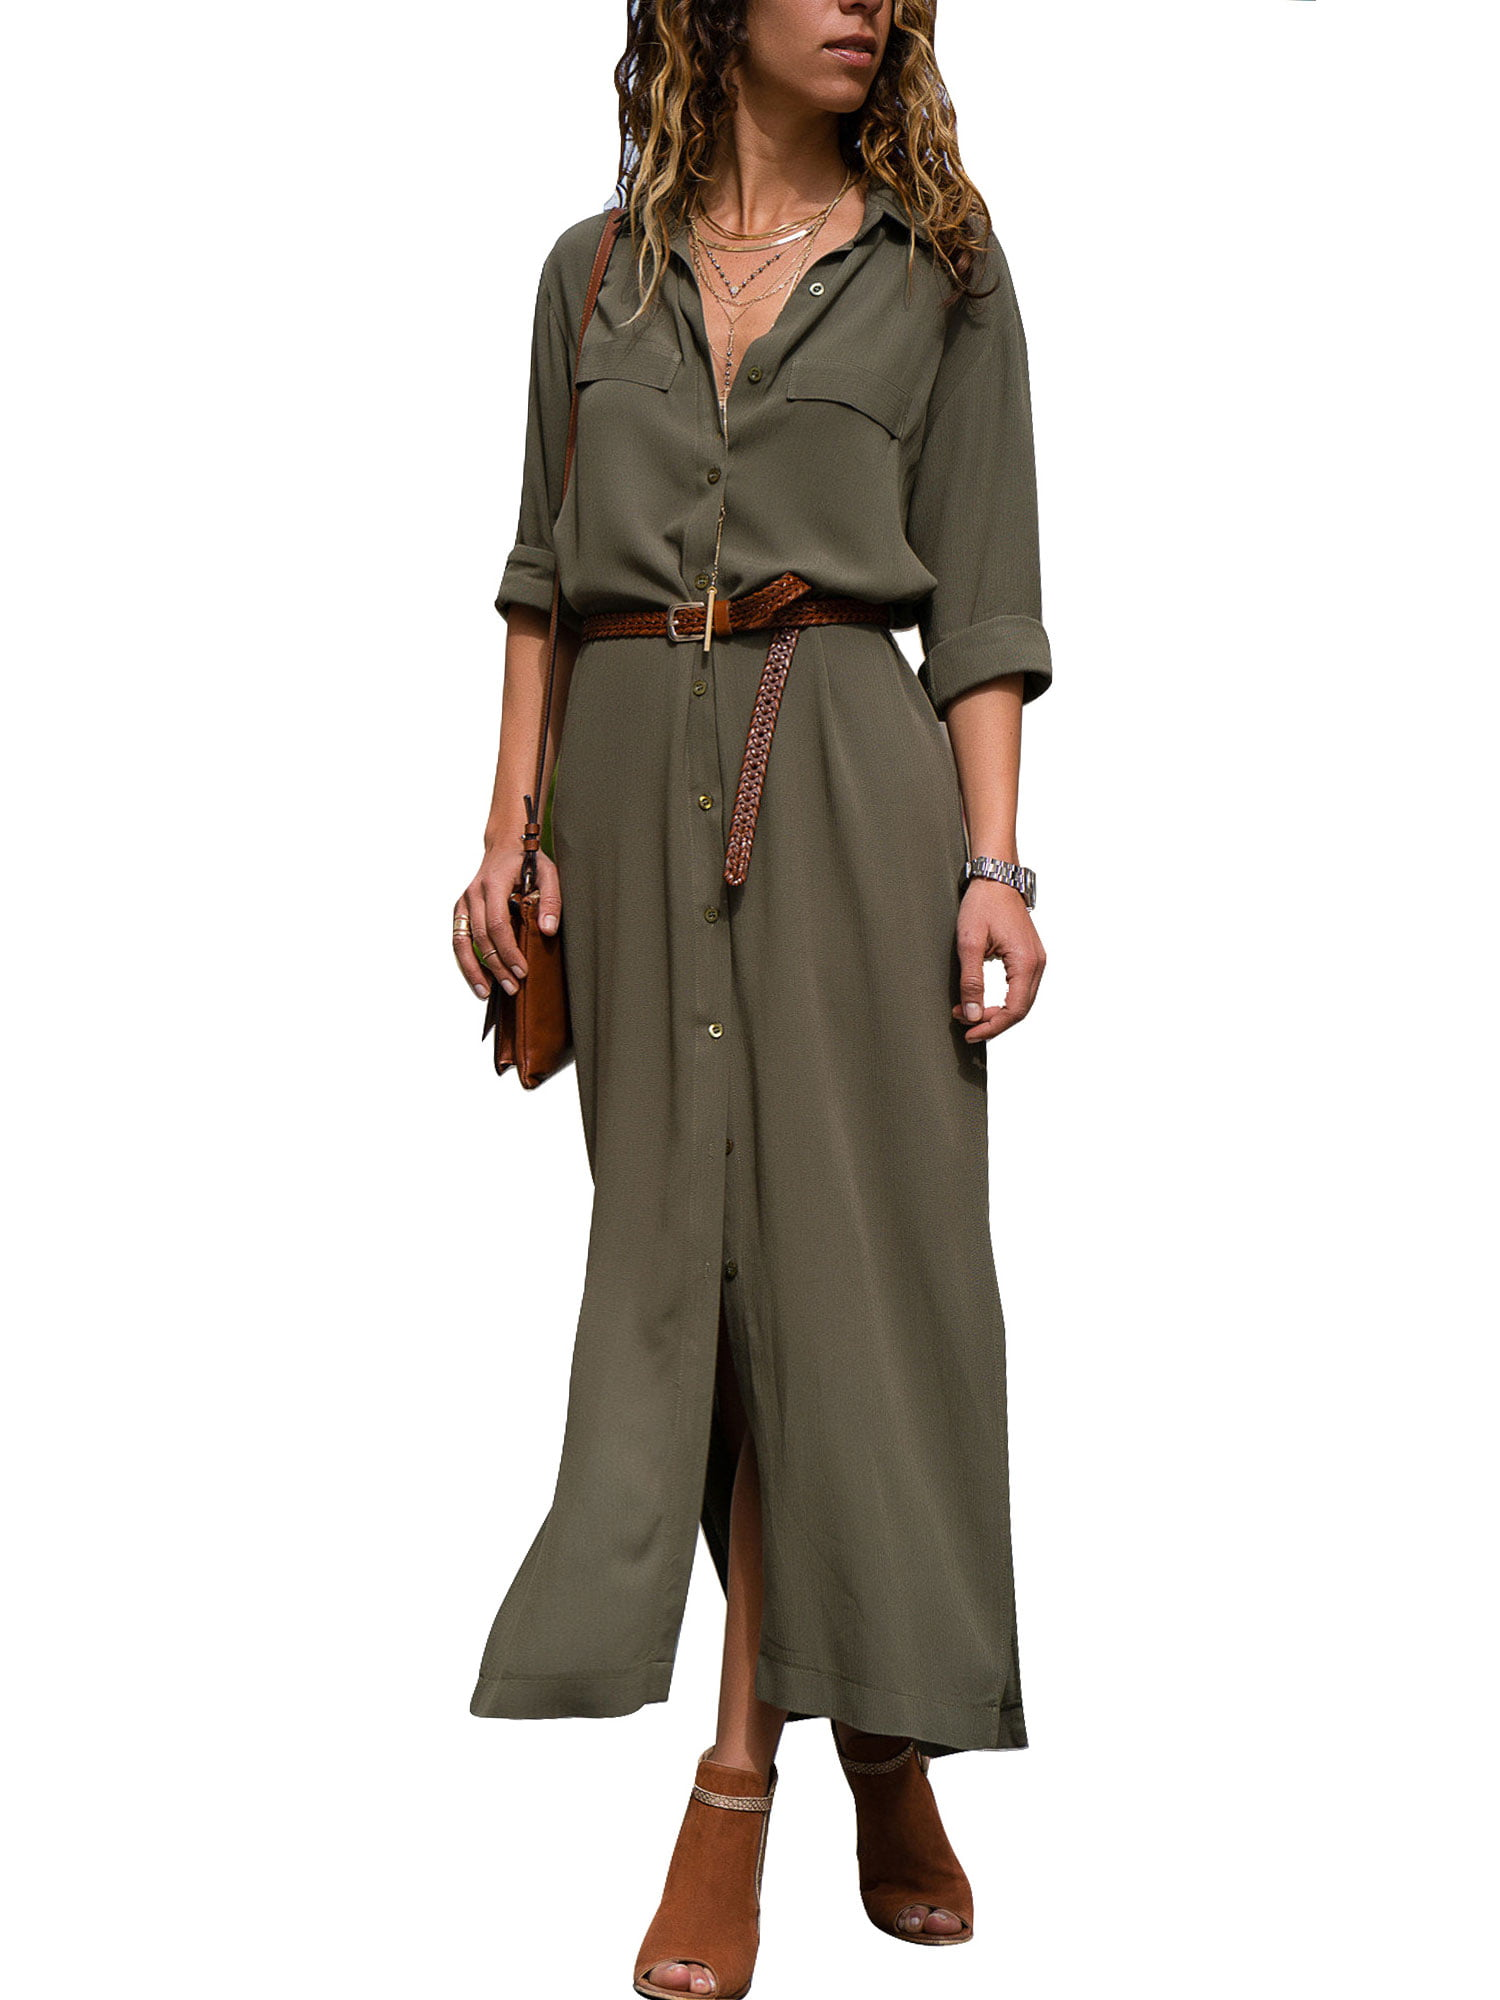 Usstore  Women Button Maxi Dress Fall Winter O-Neck Loose Casual Elegant Slim Pleated Full Sleeve Party Dress